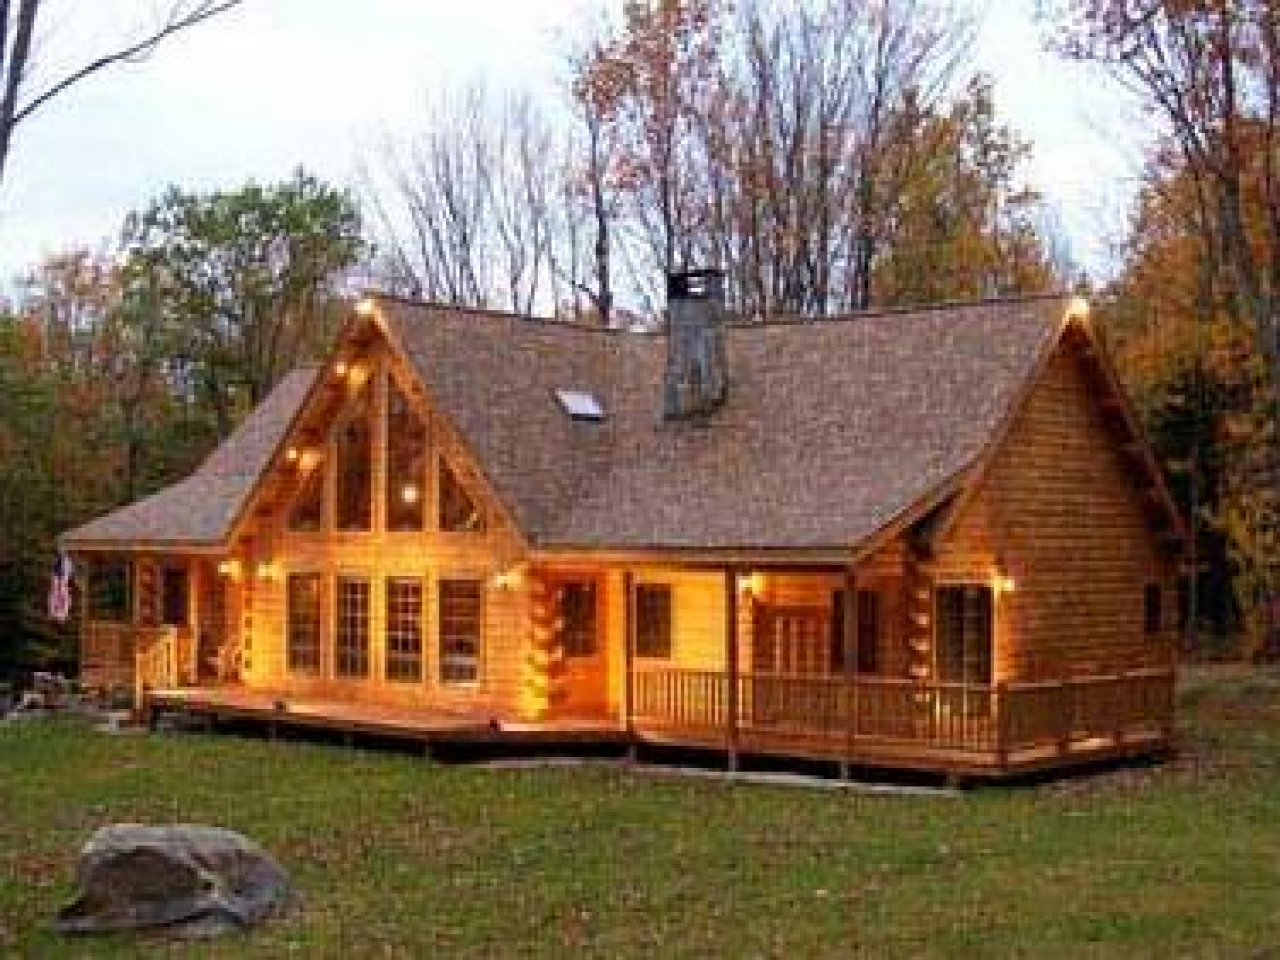 Cedar log home designs cedar cabins one story log cabins for Single story log cabin homes